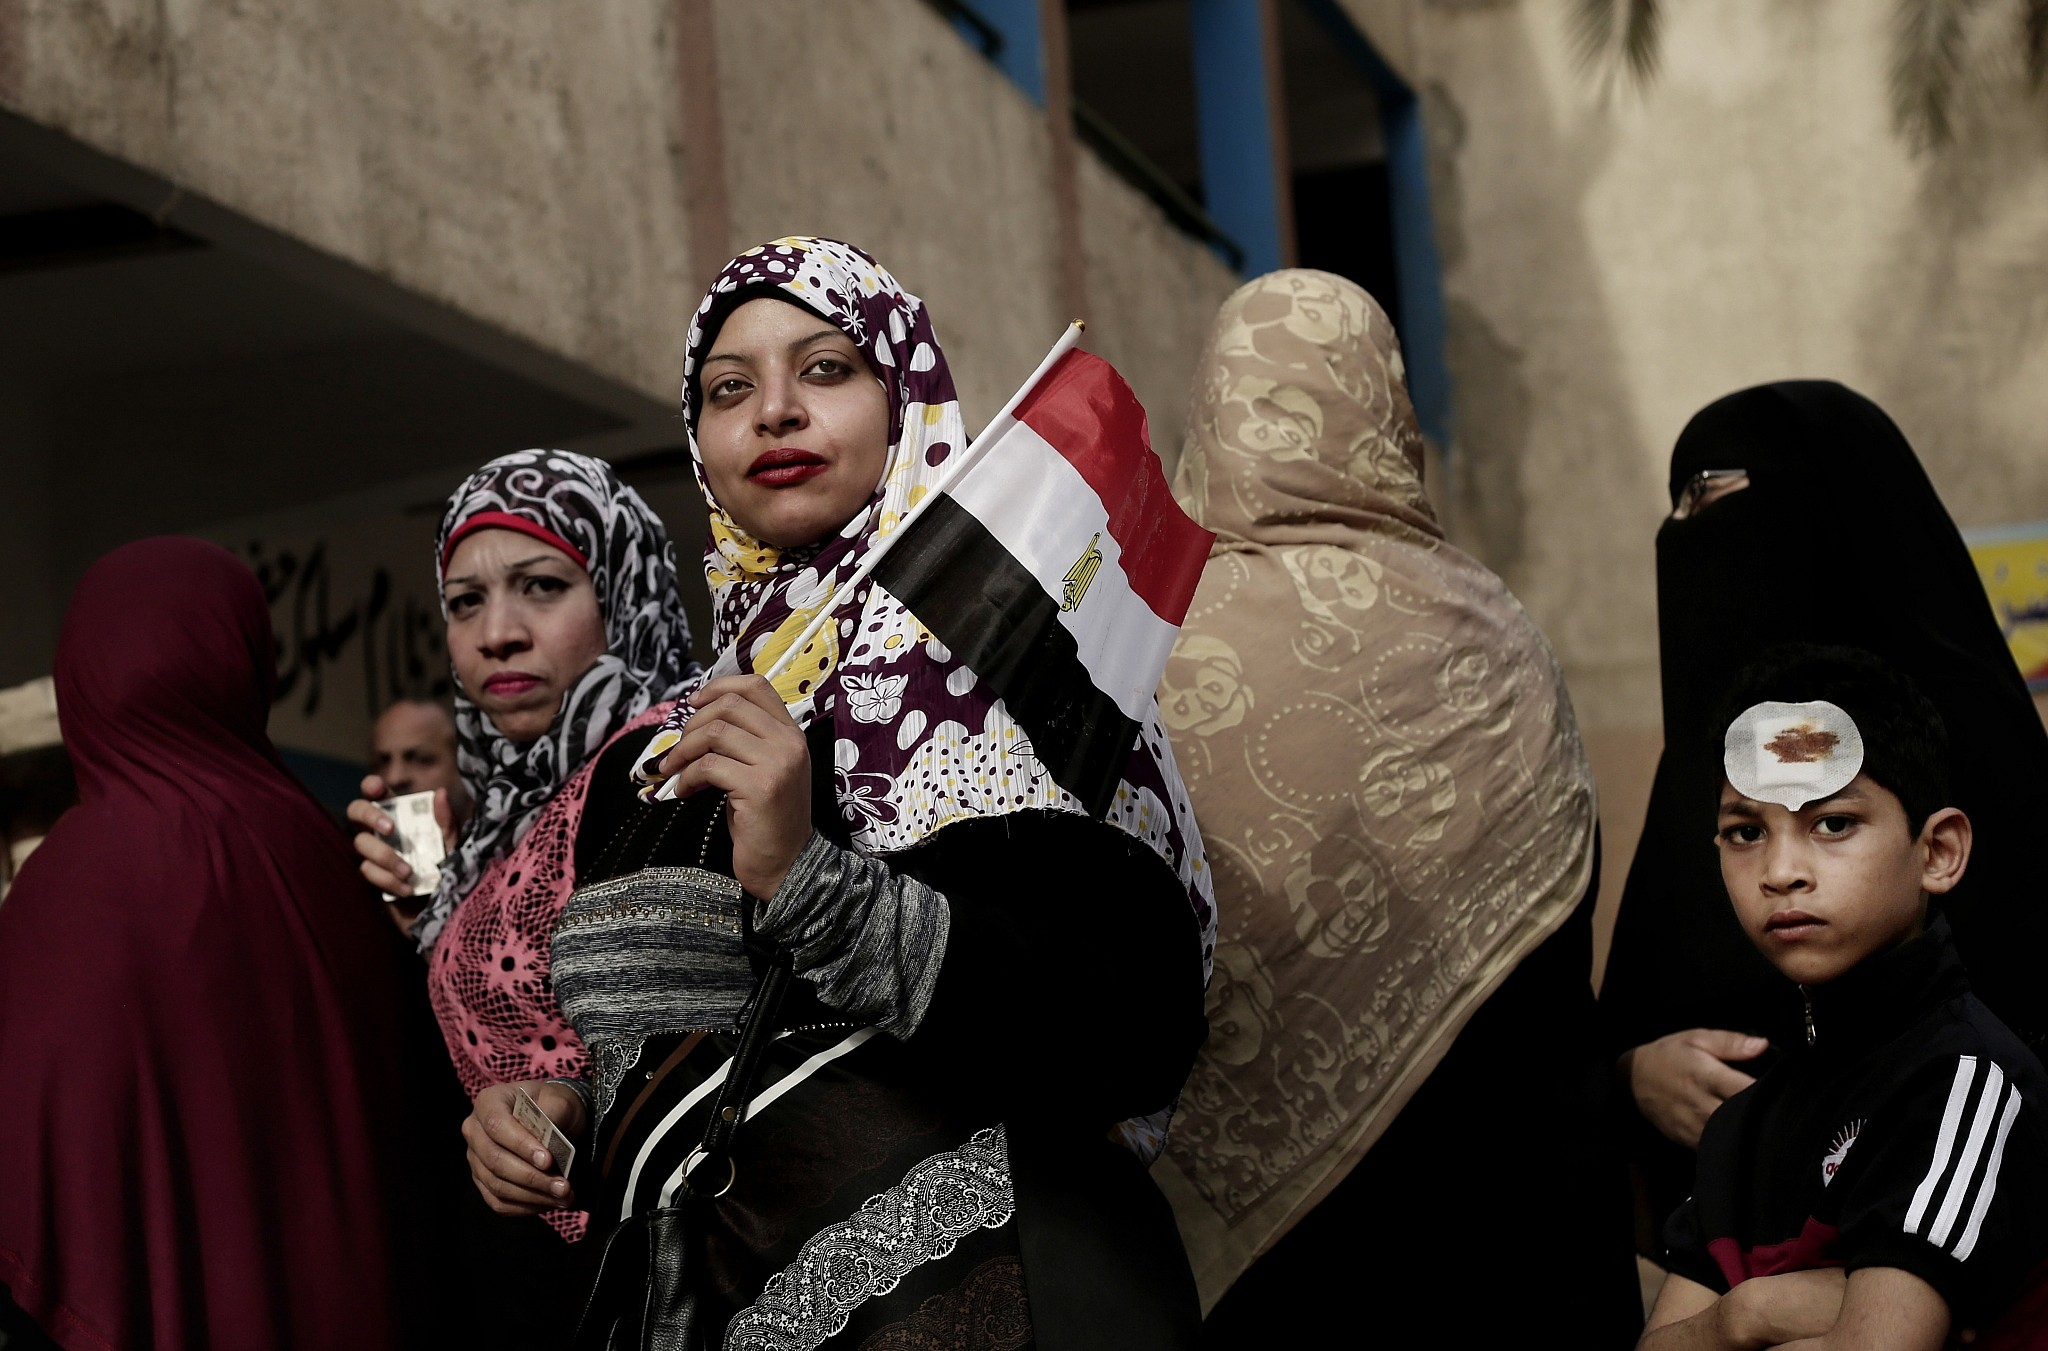 Egypt votes on final day, with all eyes on turnout